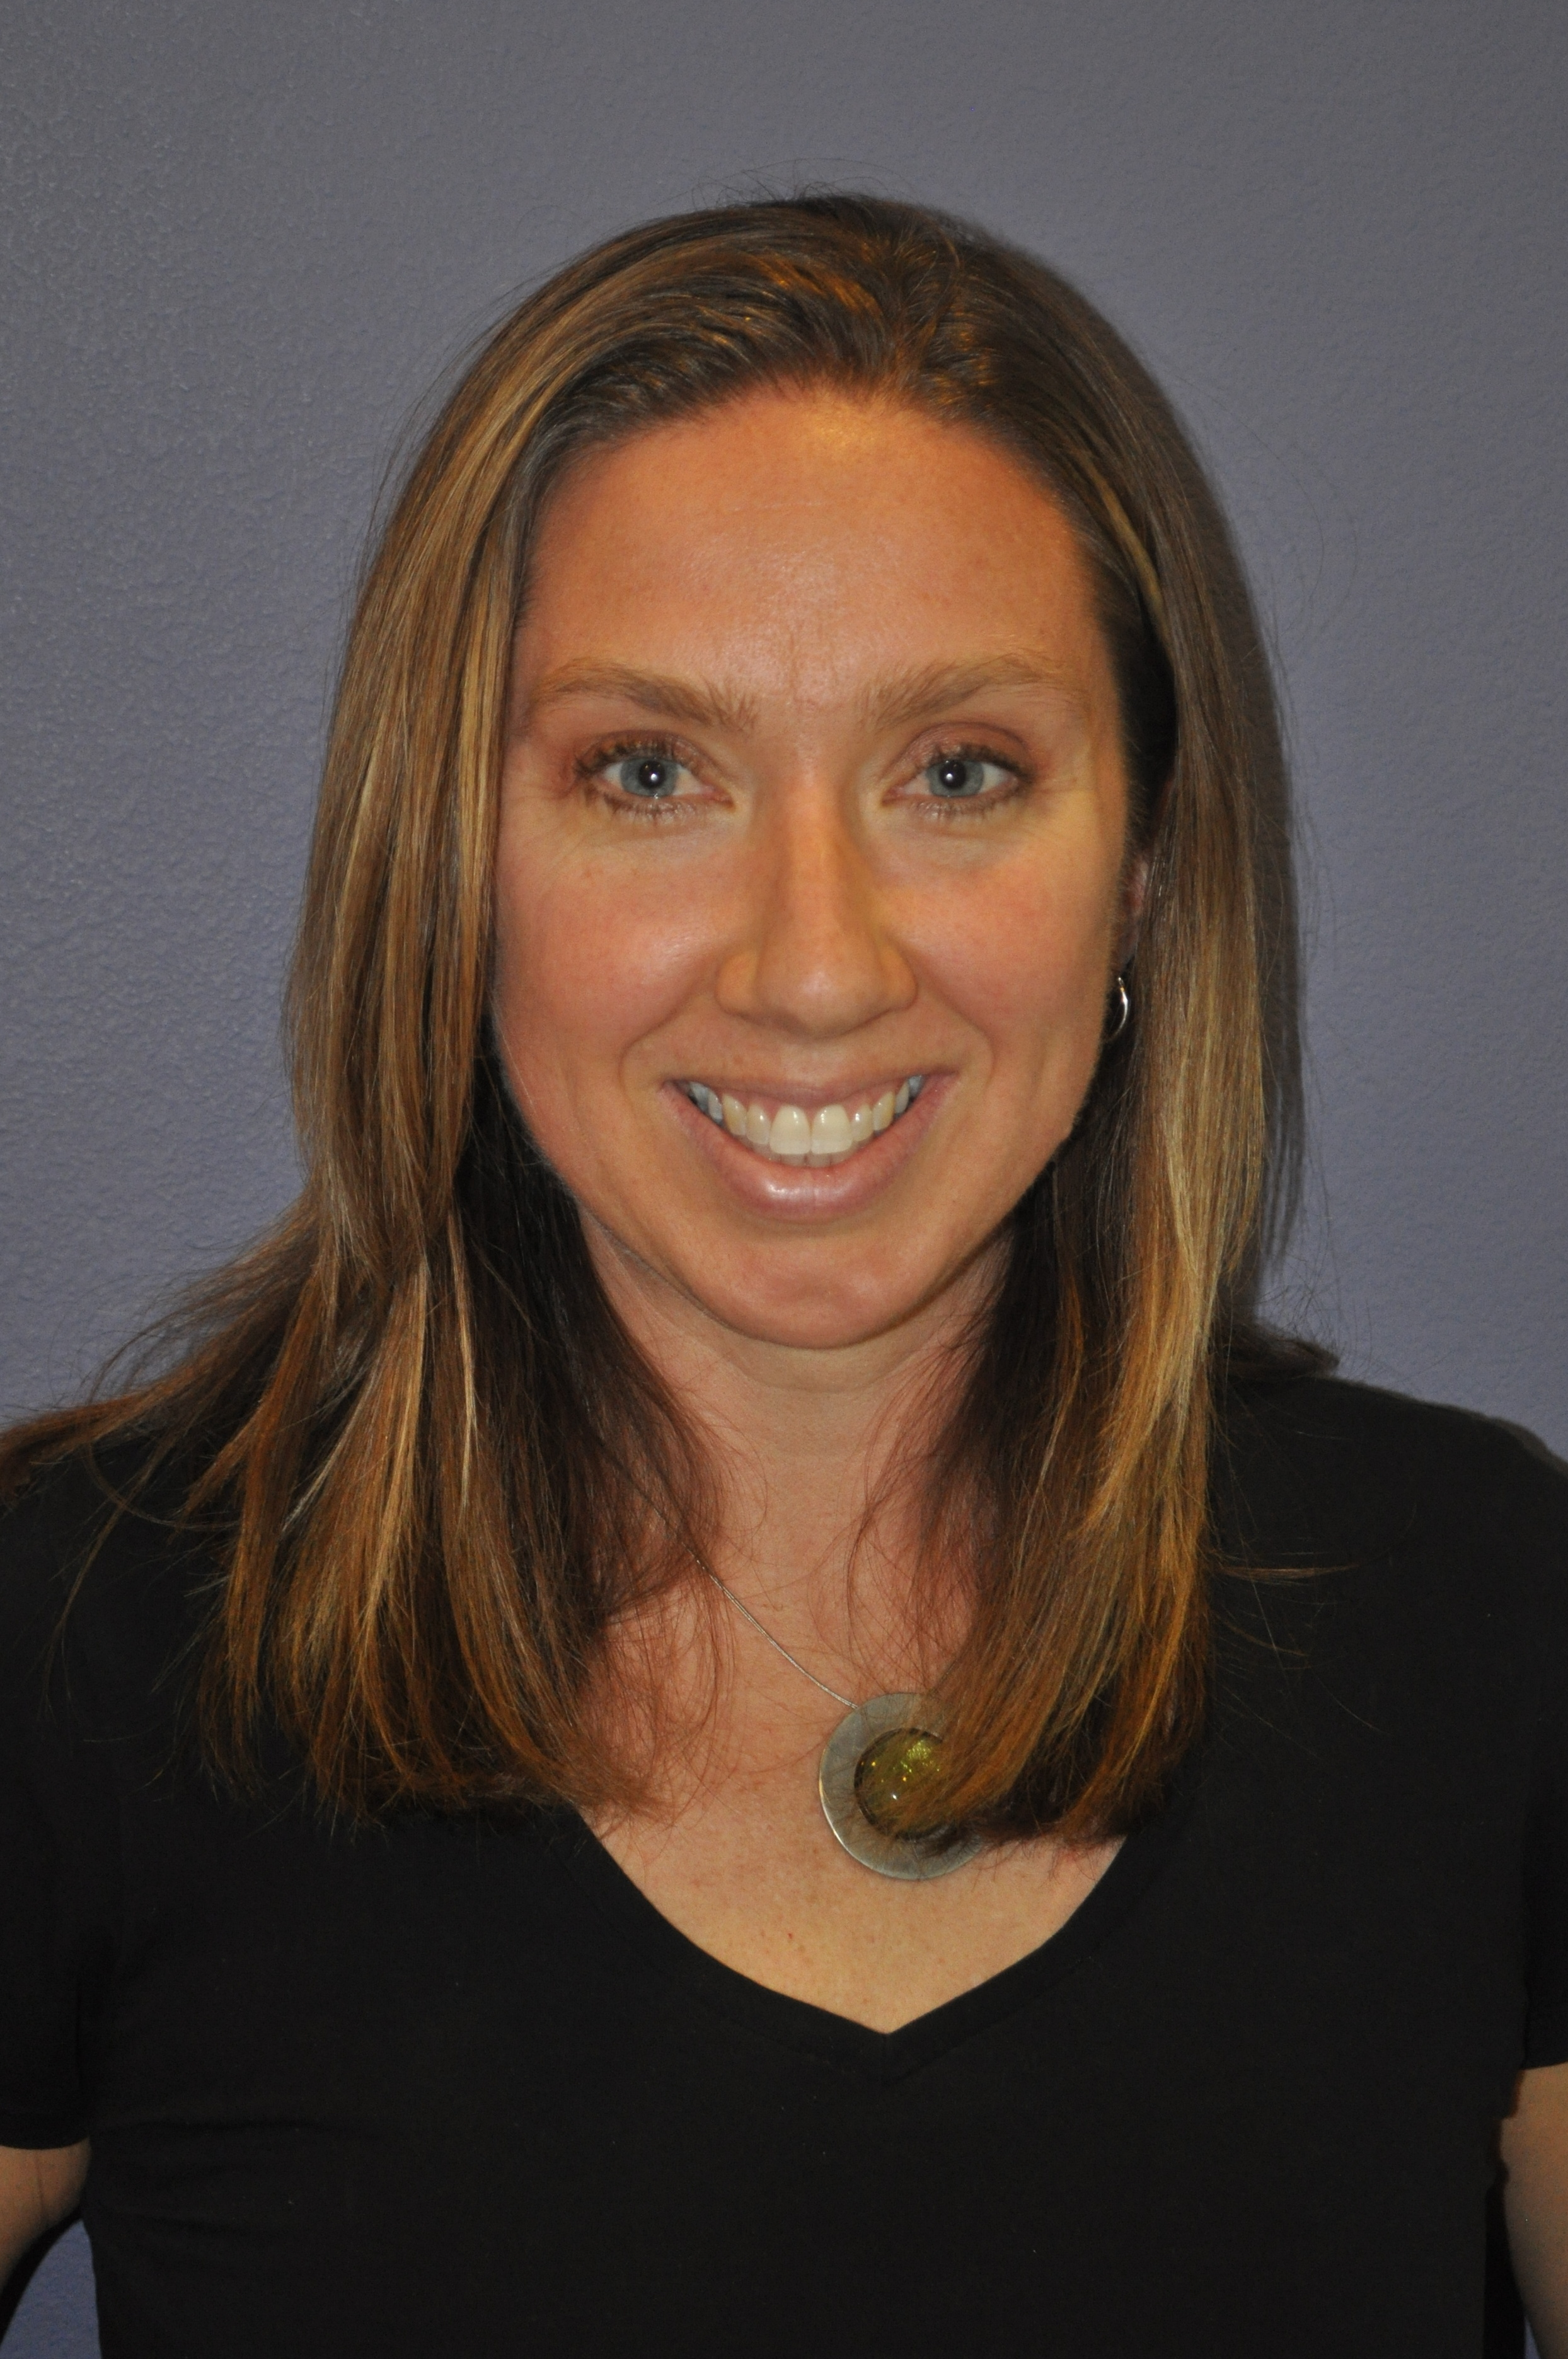 Physical therapy assistantlos angeles - Stephanie Received Her Masters Degree In Physical Therapy From The University Of Puget Sound In 2000 In The Last 16 Years She Has Been Practicing In